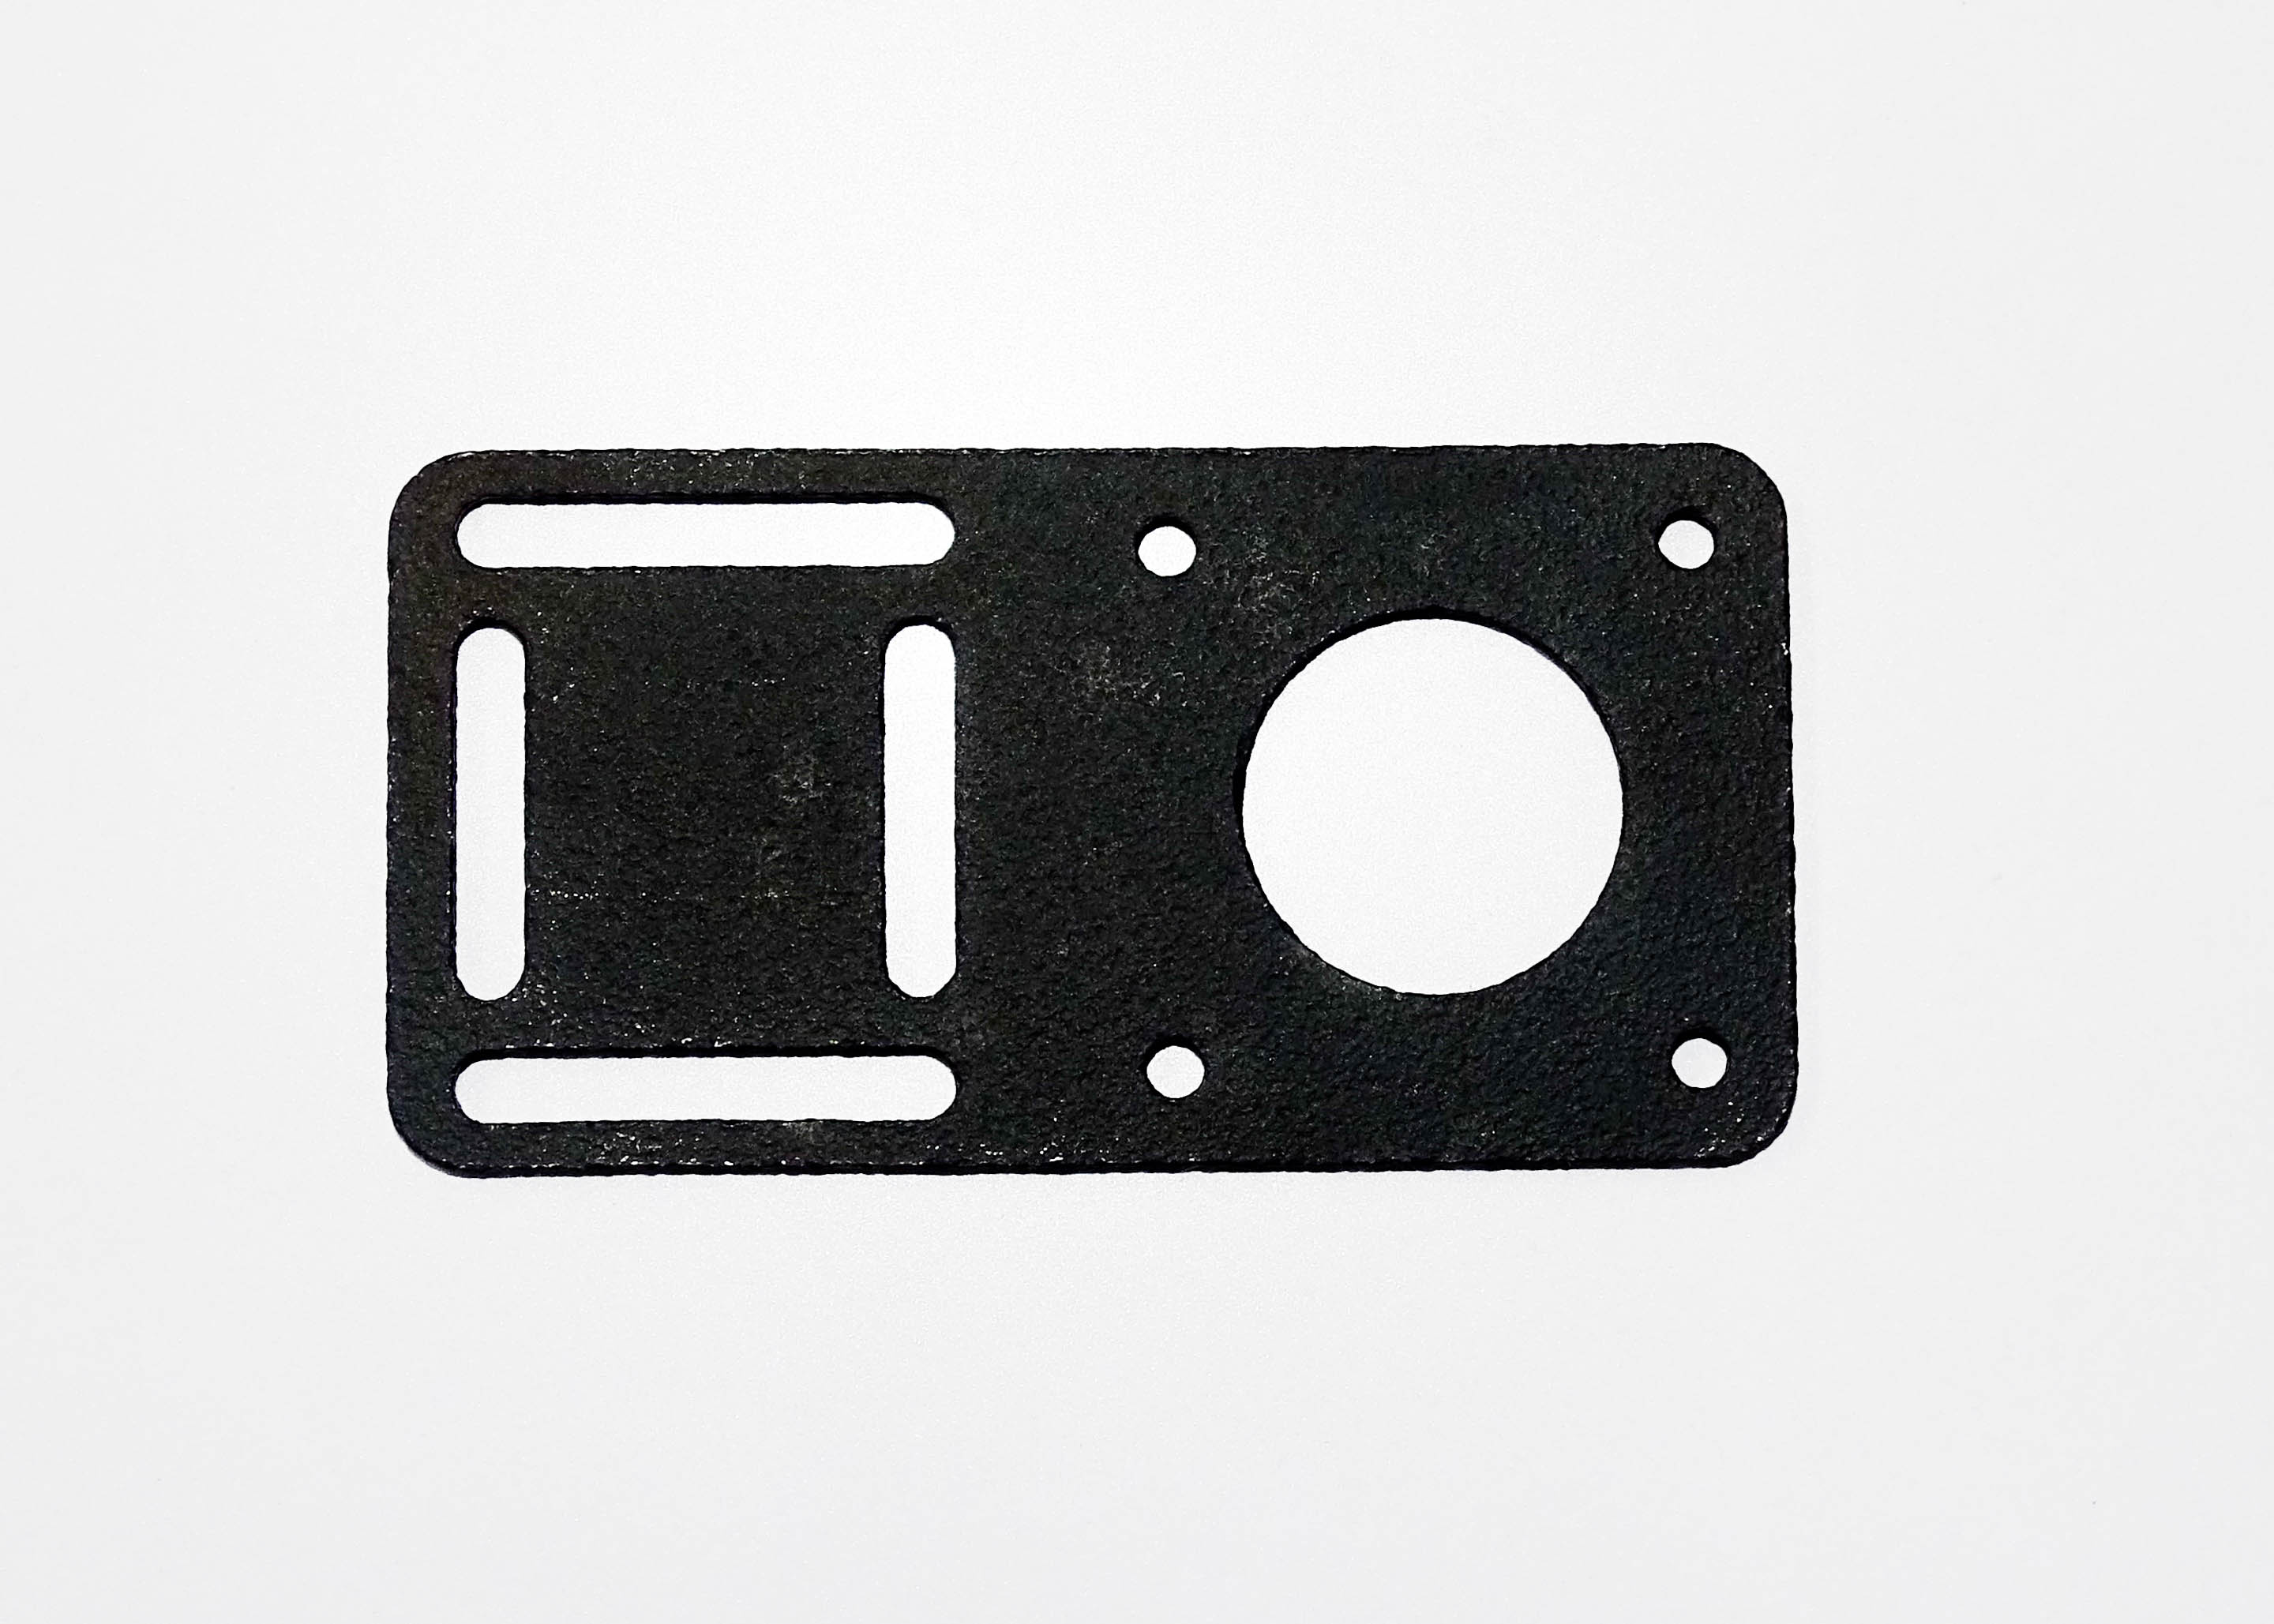 EasyMech Bracket For NEMA 17 Stepper Motor - STRAIGHT